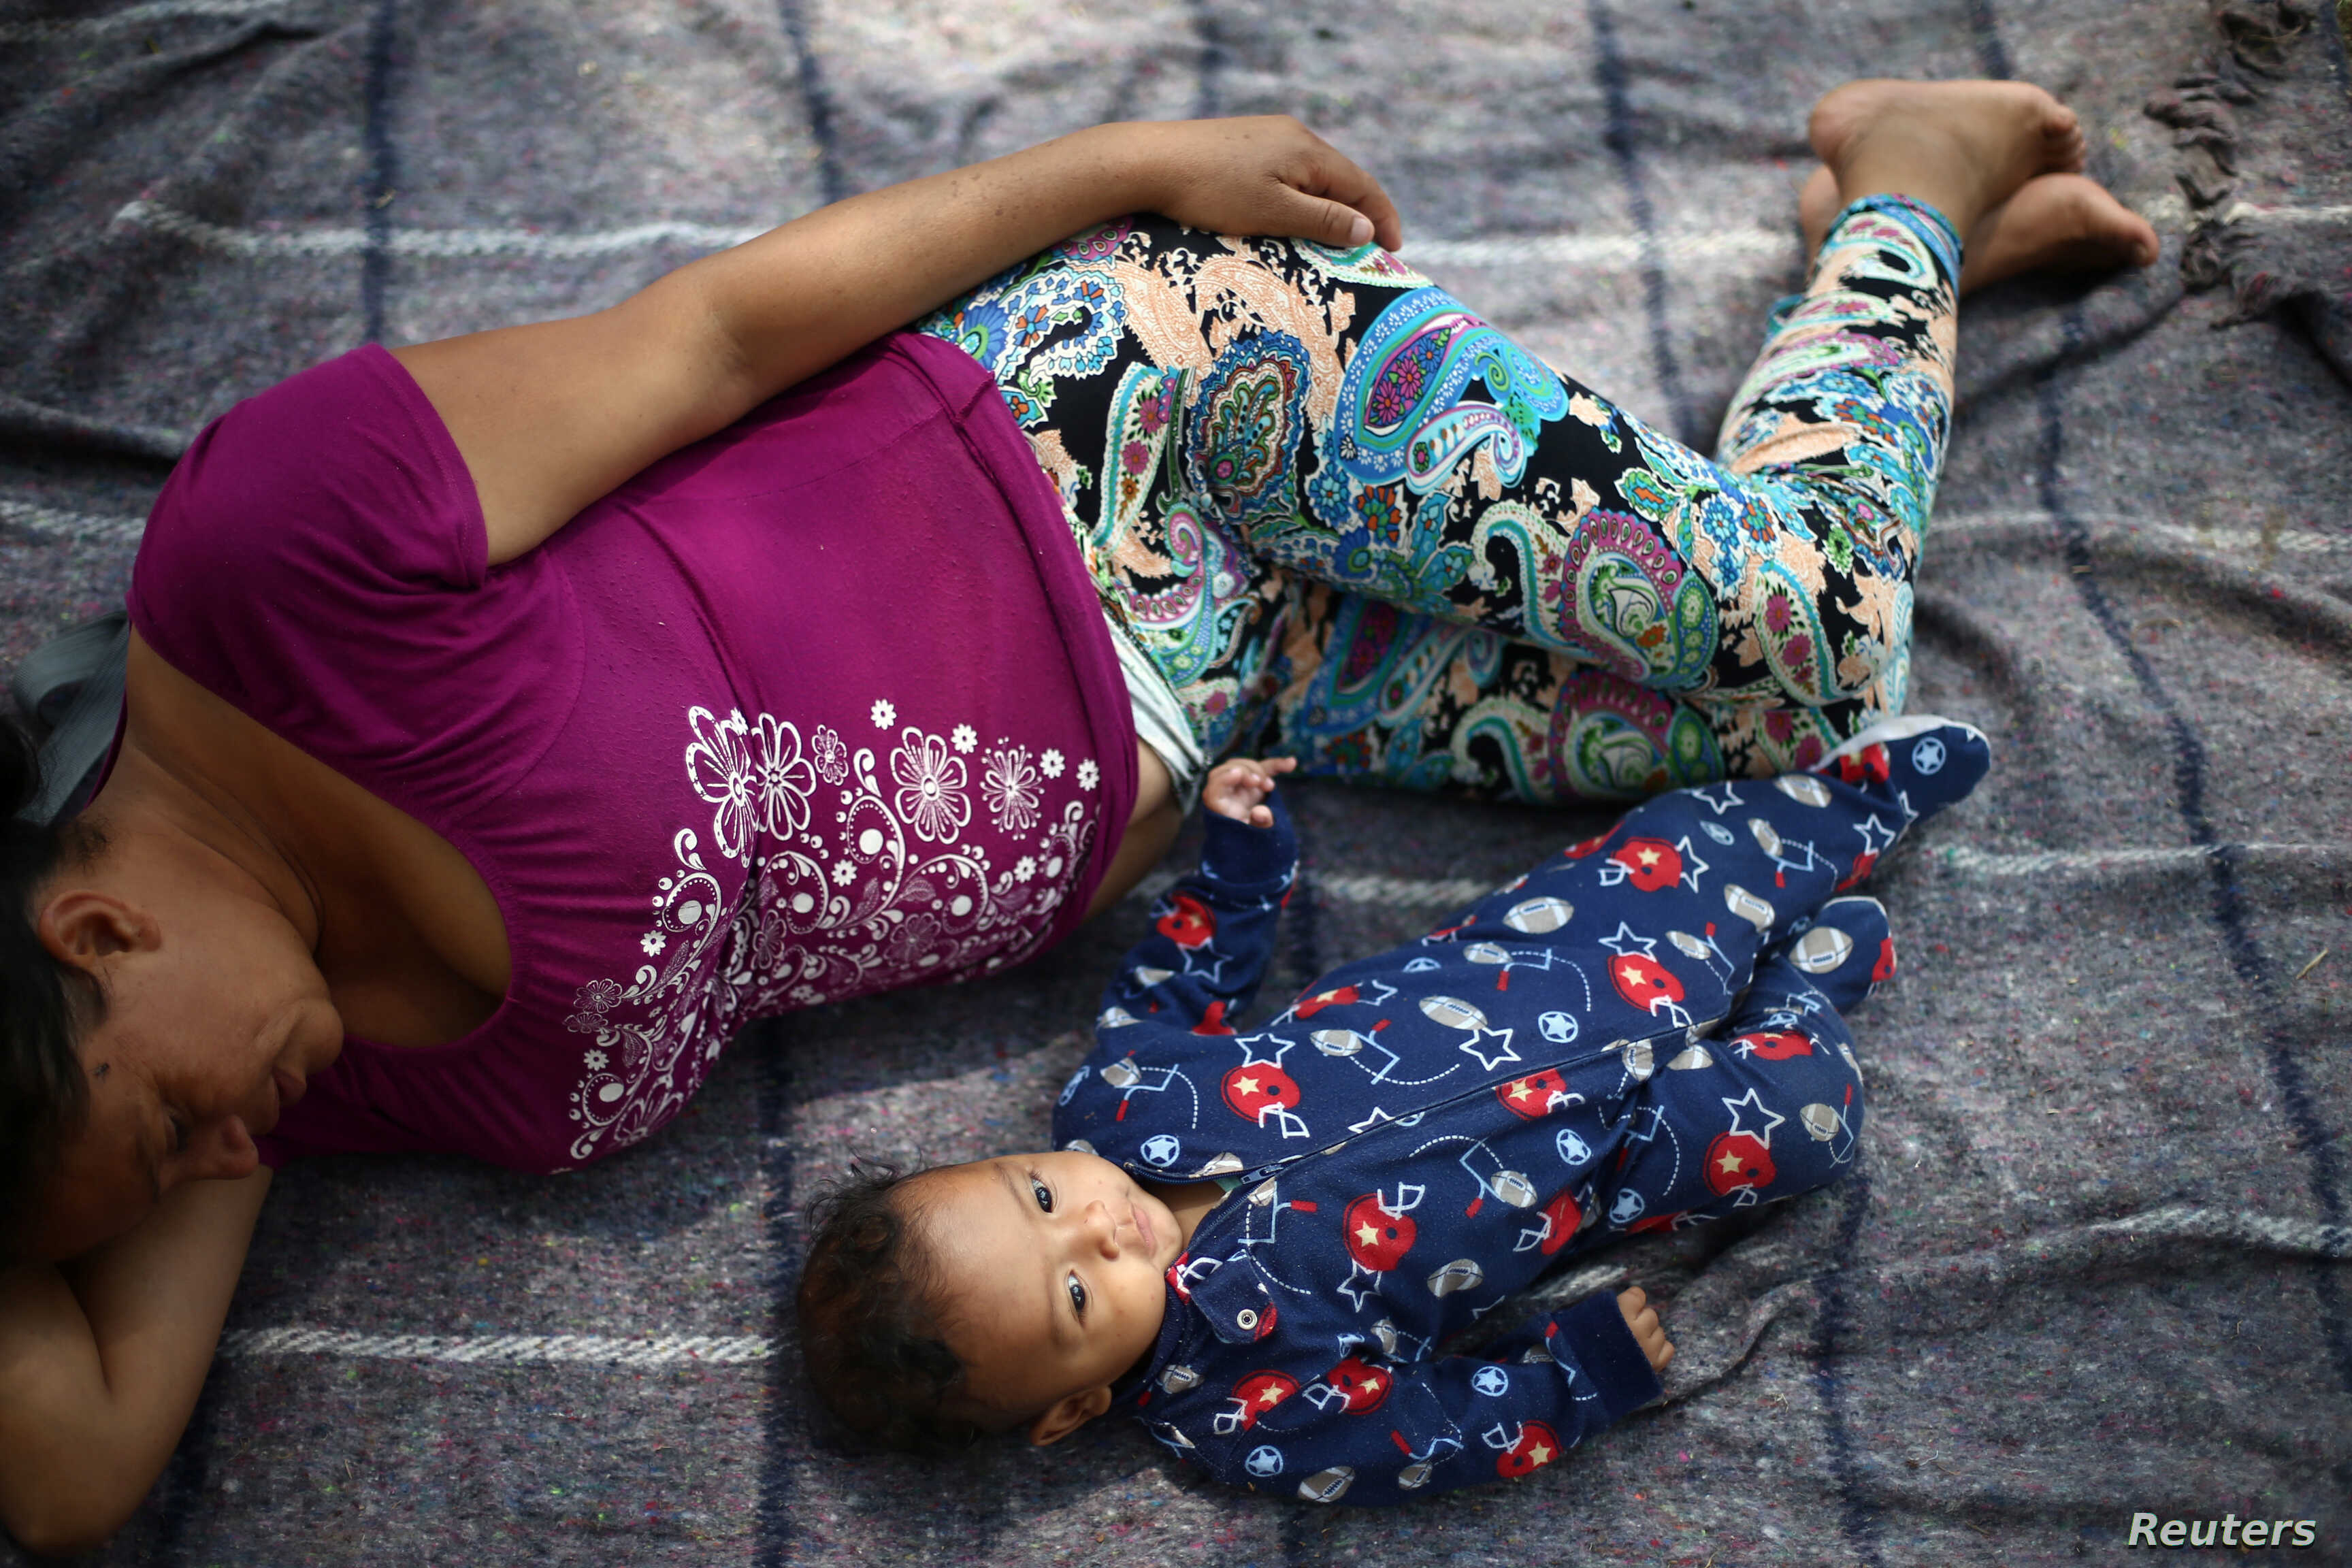 Aide and her baby son Clesner from Guatemala, rest after arriving with fellow Central American migrants, who are moving in a caravan through Mexico toward the U.S. border, at a shelter set up by the Catholic church, in Puebla, Mexico April 6, 2018.